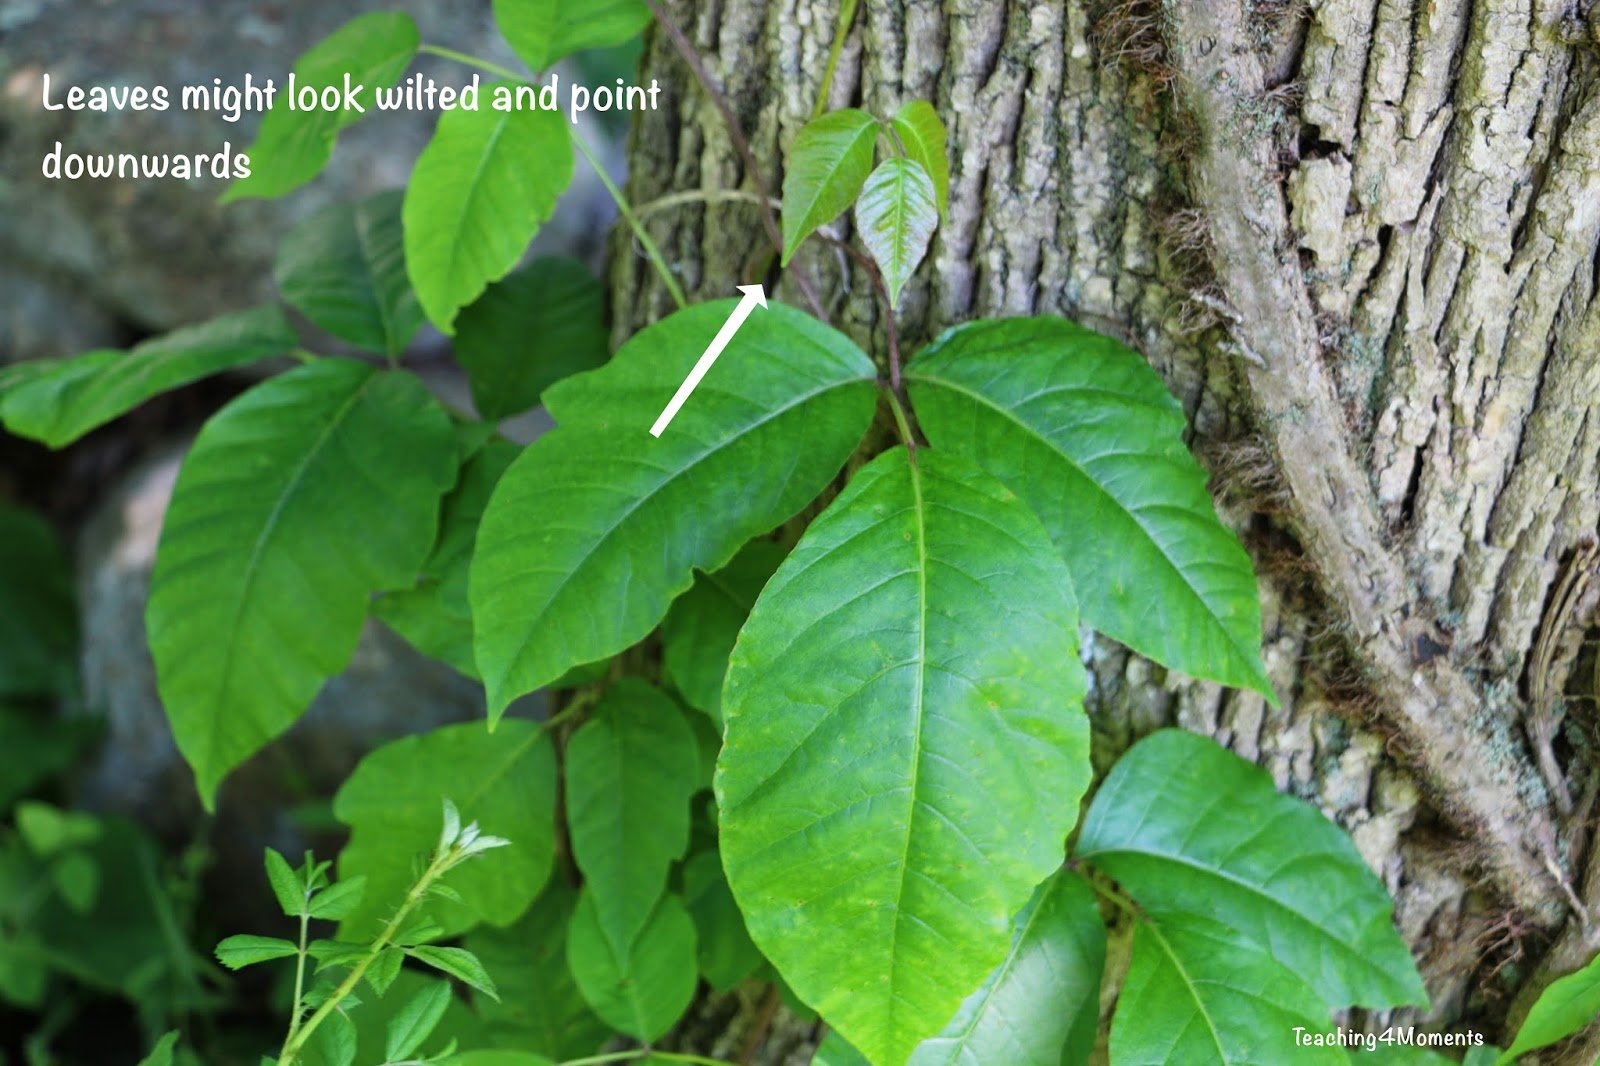 Teaching 4 Moments-Poison ivy may have wilted looking leaves